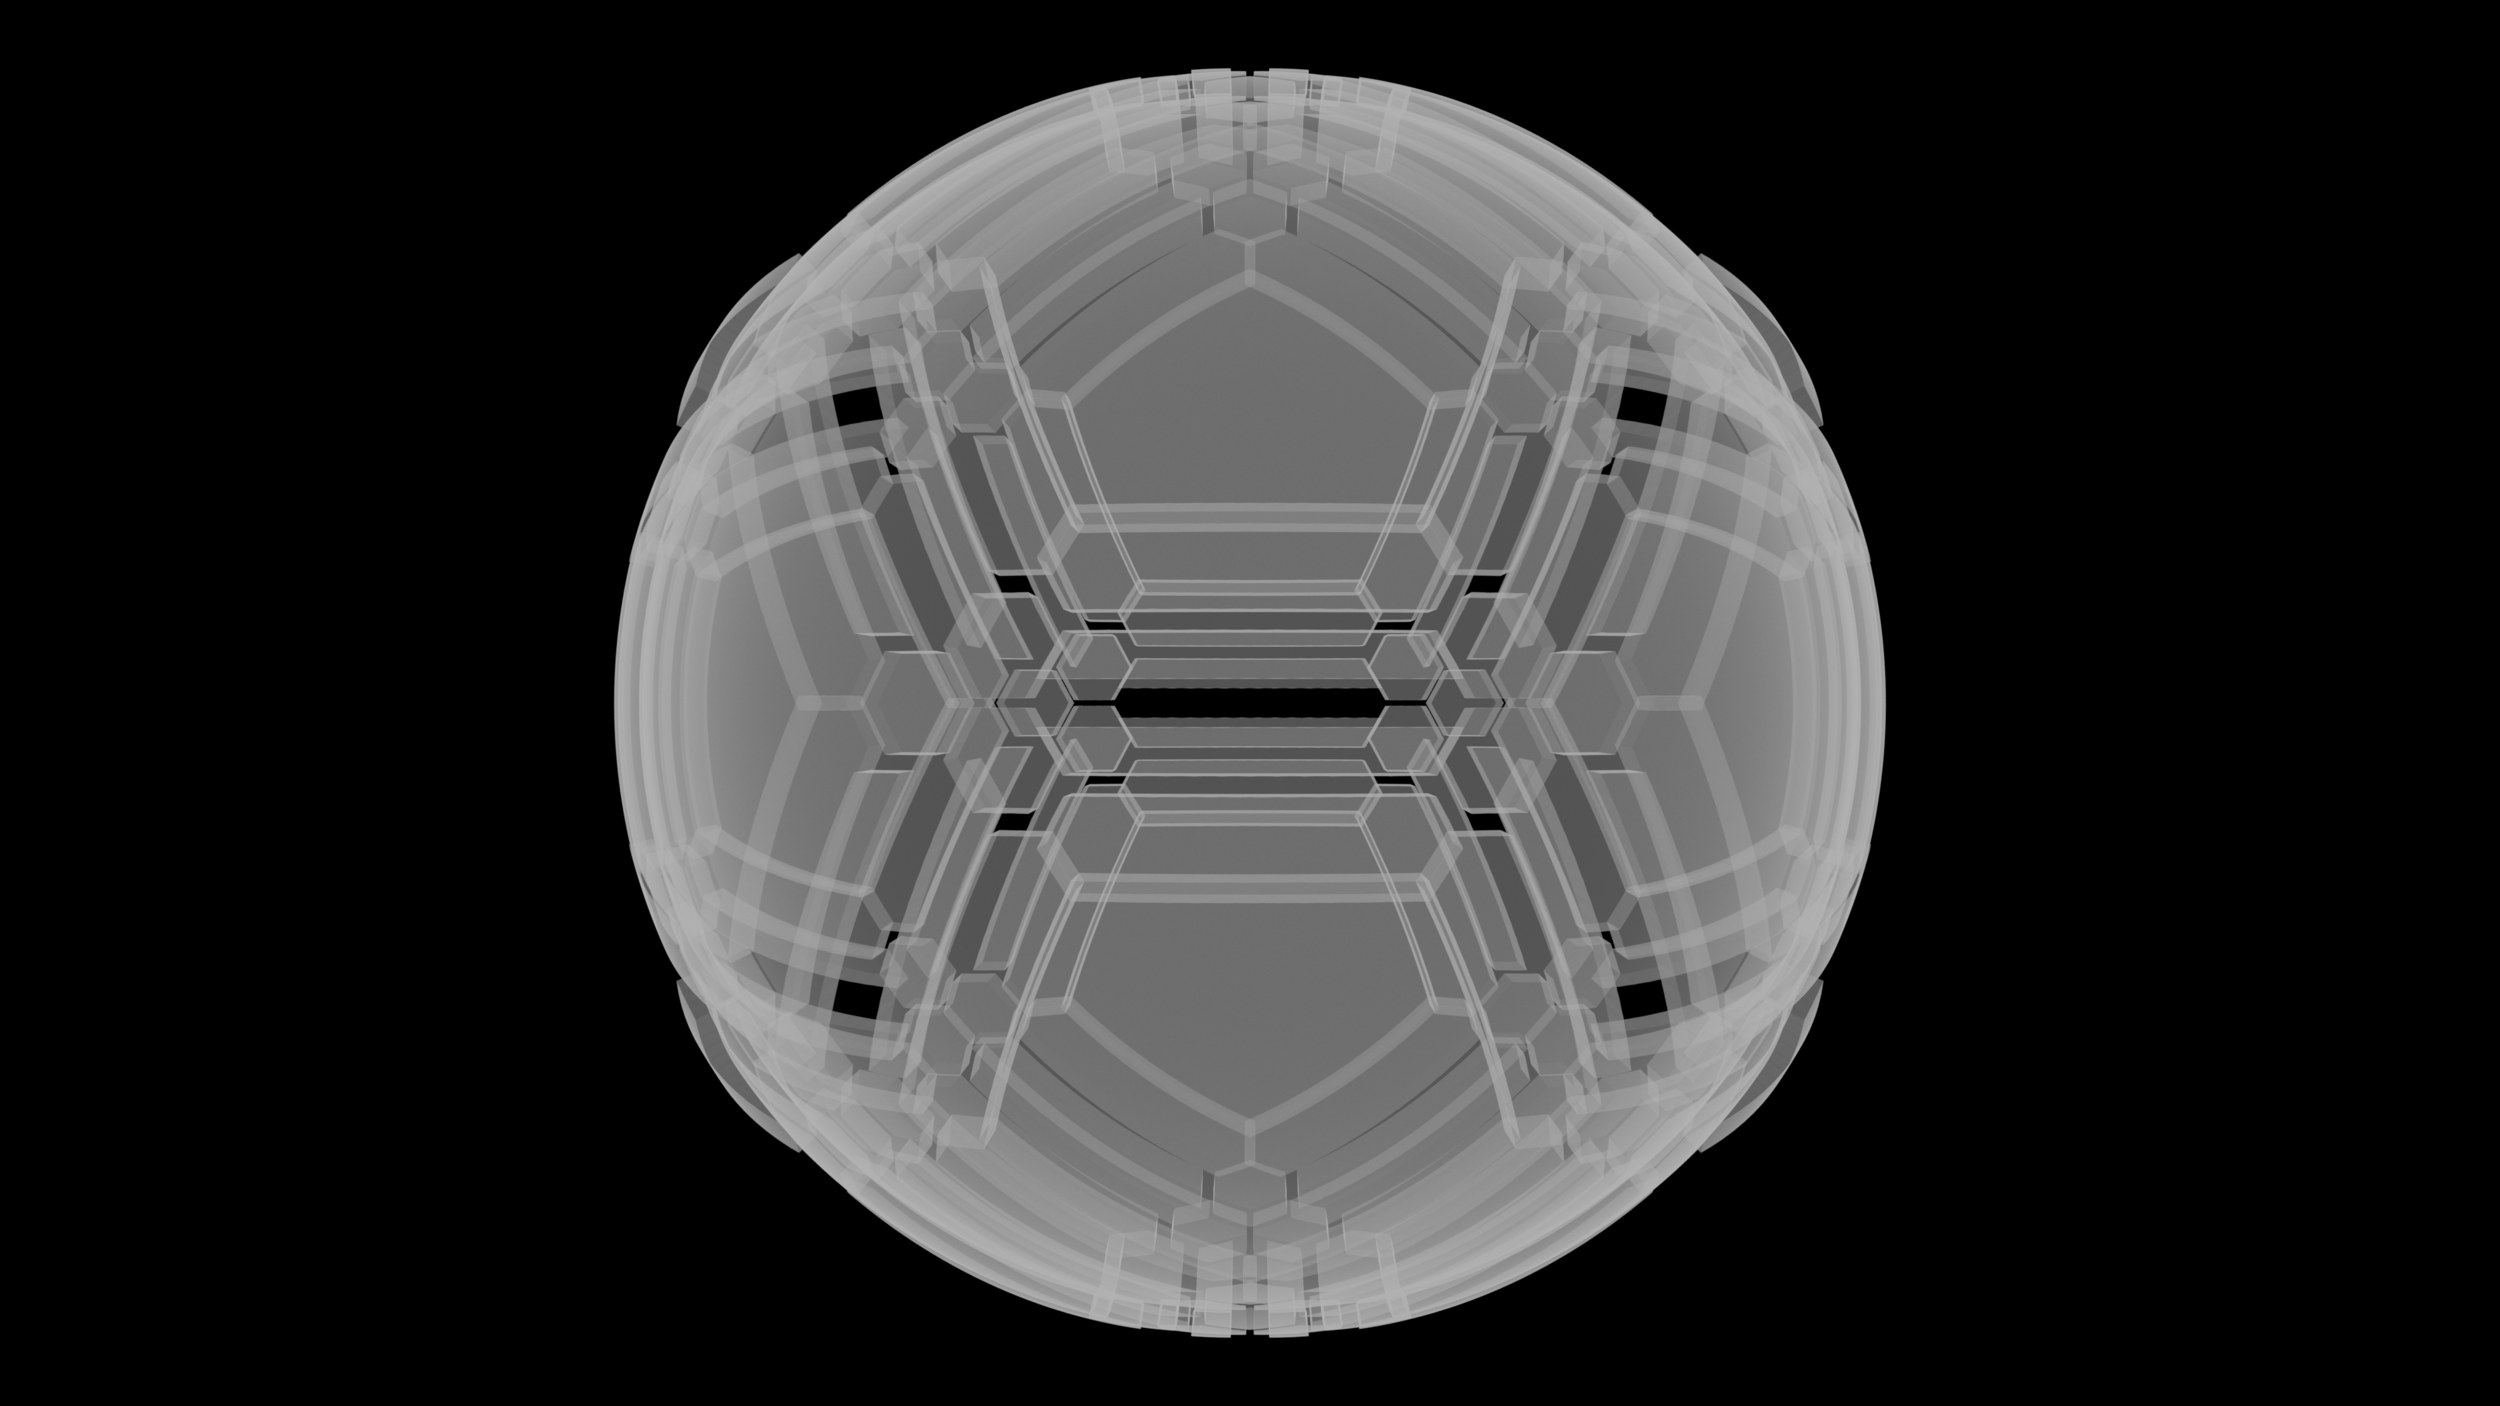 hex sphere fracture 03.png